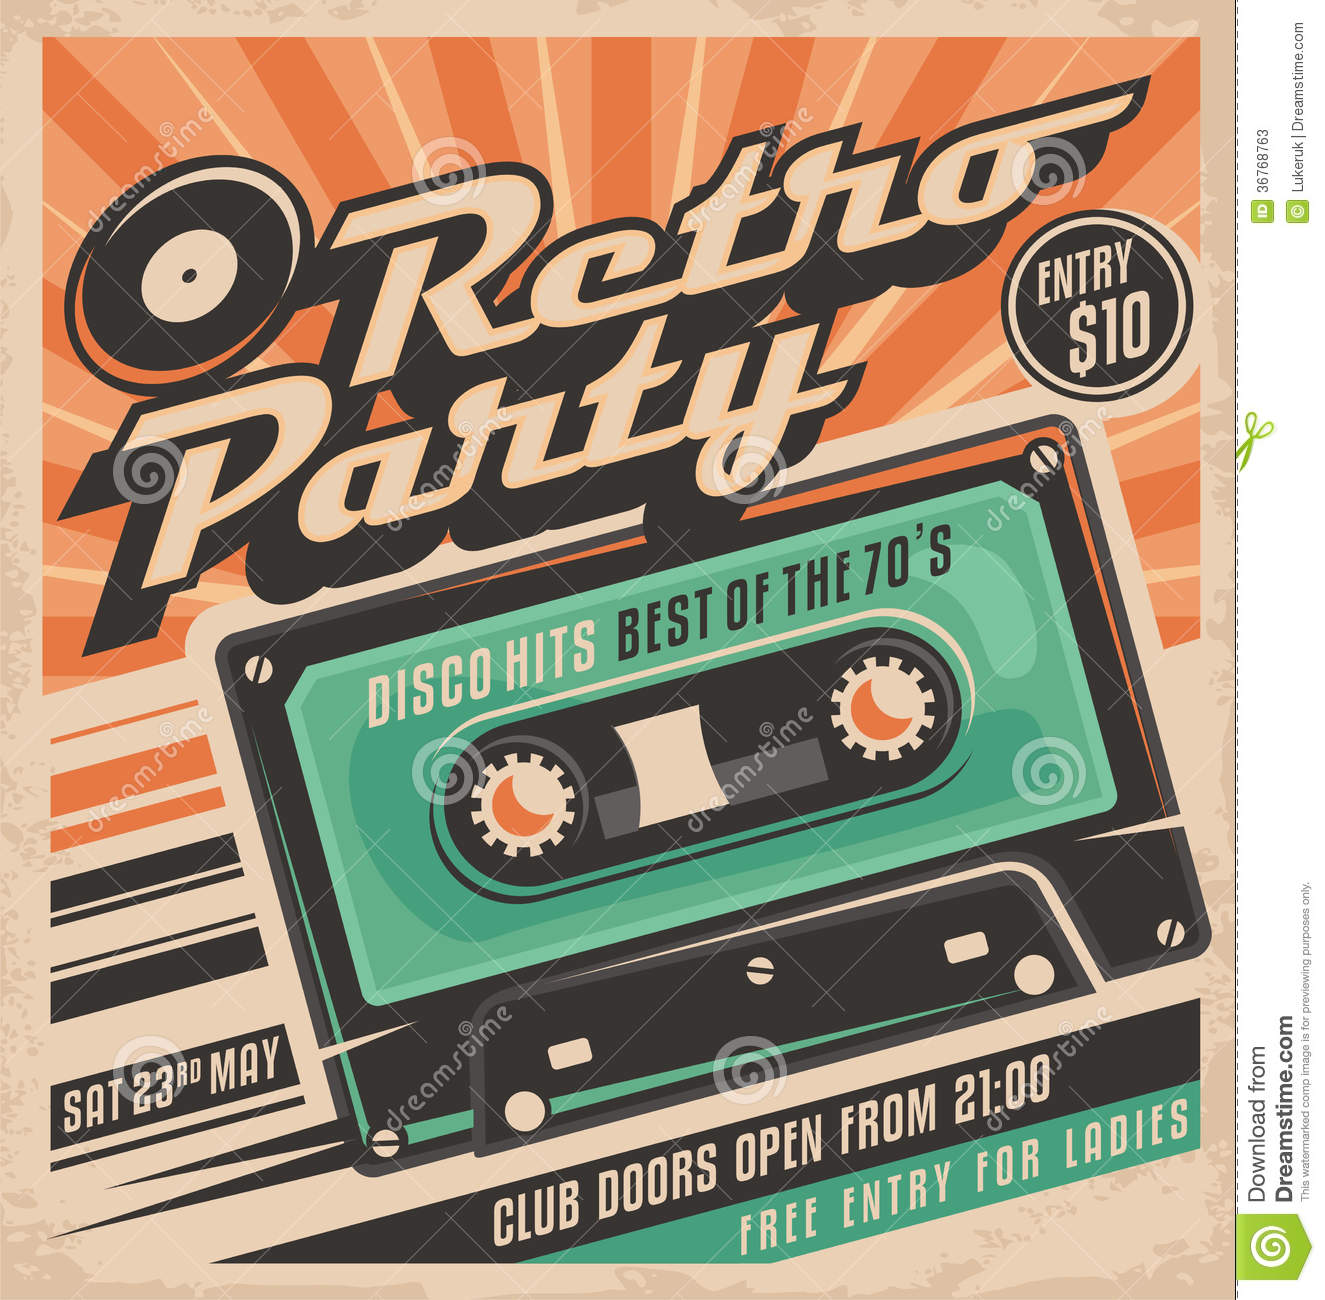 Retro Party Poster Design Template Stock Vector Illustration Of - Party invitation template: club party invitation template